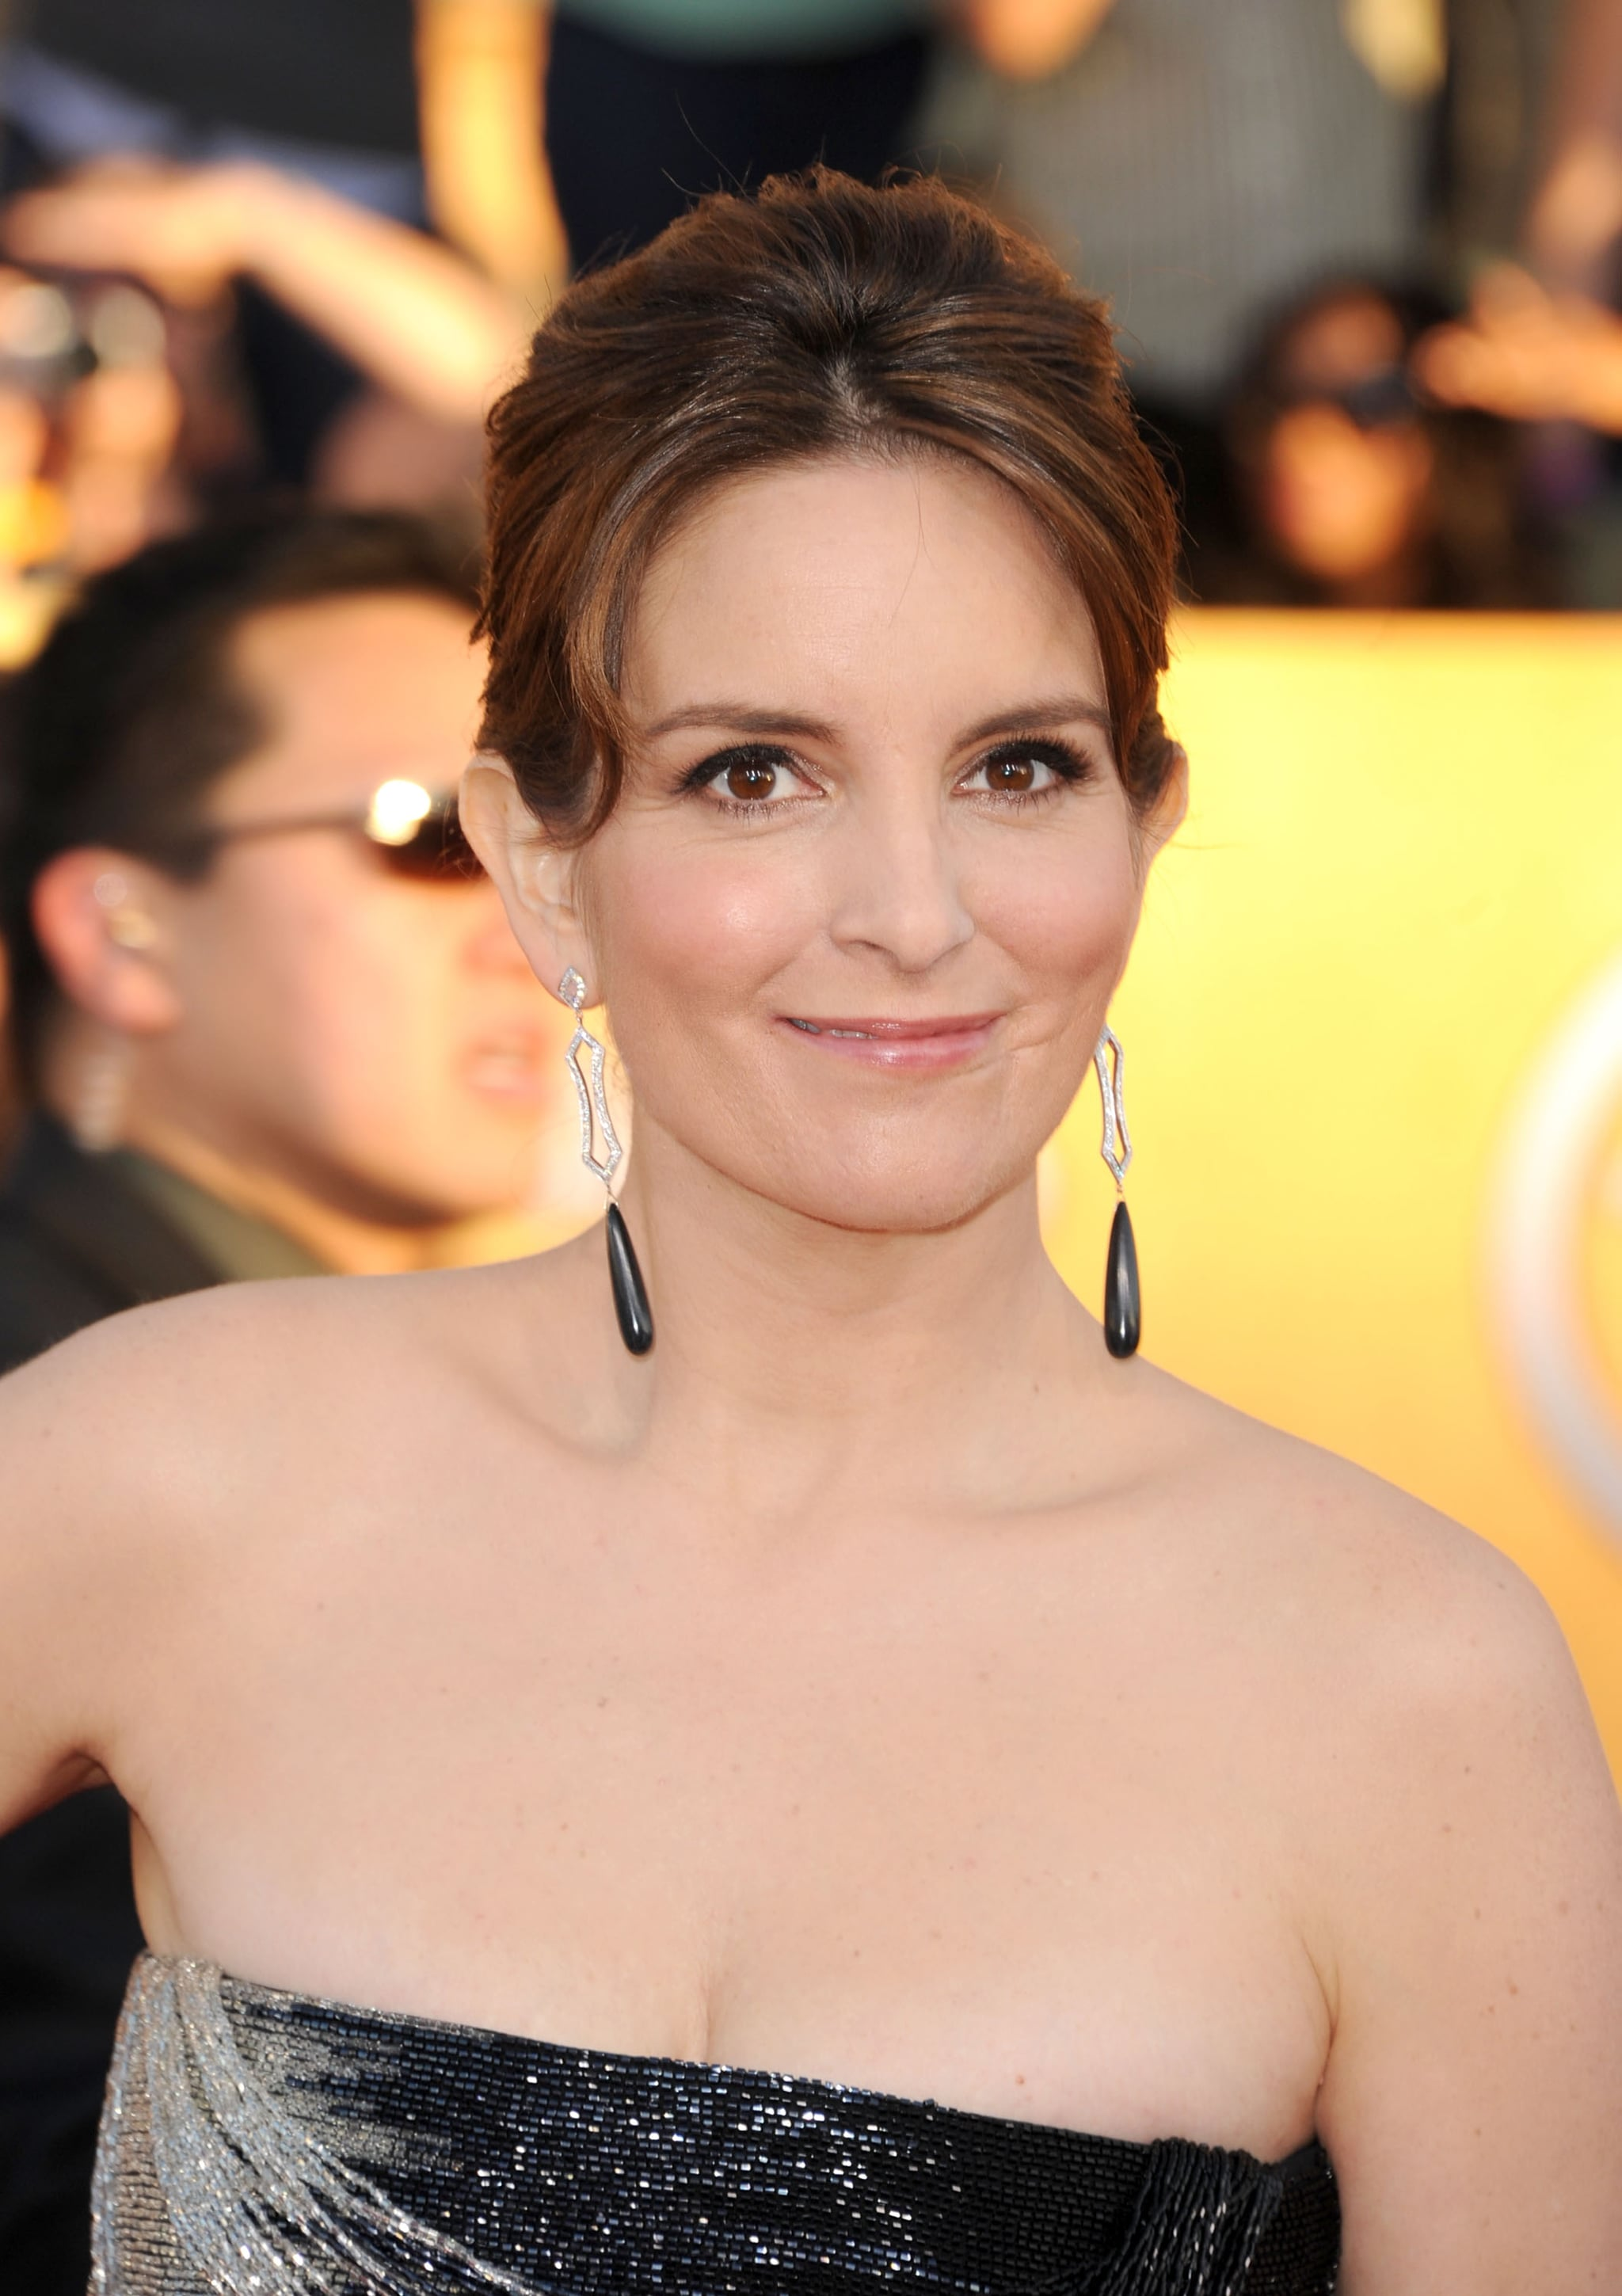 Tina Fey at the SAG Awards